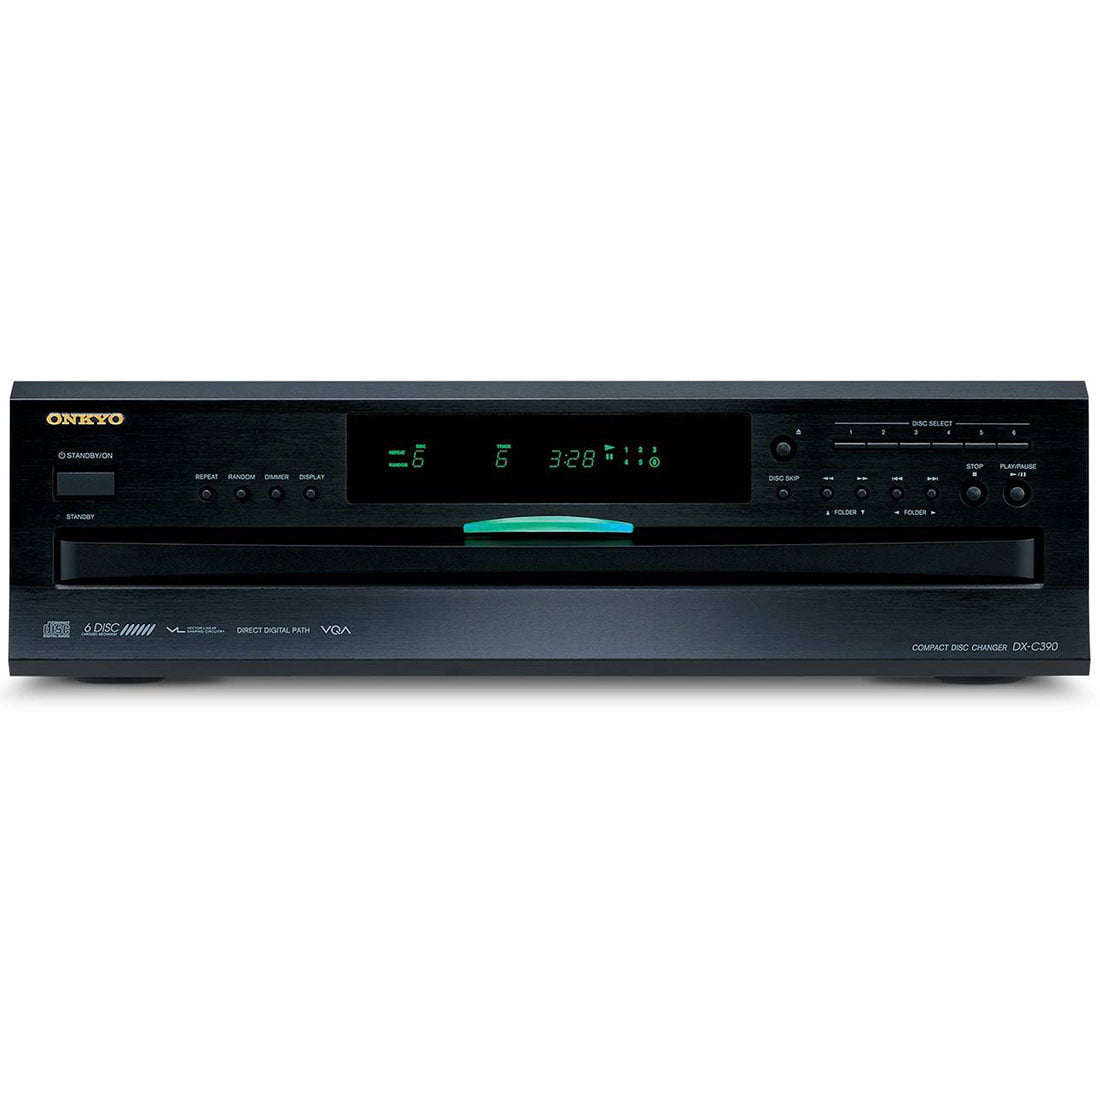 onkyo dx c390 6 disc carousel cd player b stock gibbys. Black Bedroom Furniture Sets. Home Design Ideas